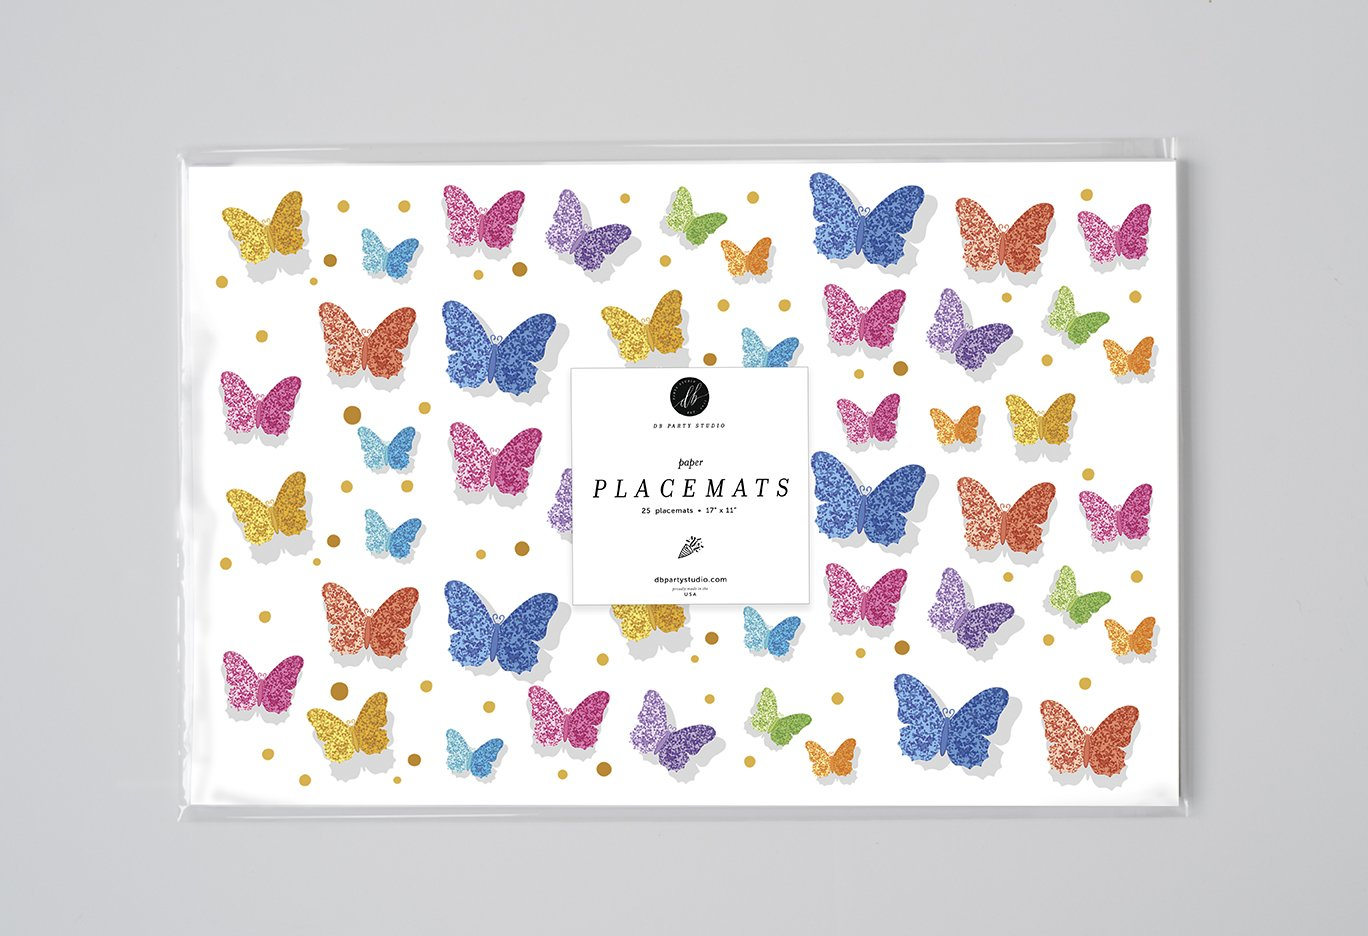 DB Party Studio Paper Place Mats 25 Pack Pretty Butterflies Design Indoor Outdoor Girl Birthday Engagement Grad Parties Baby Shower Disposable Quick Cleanup Table Setting Decor 17 x 11 Placemats